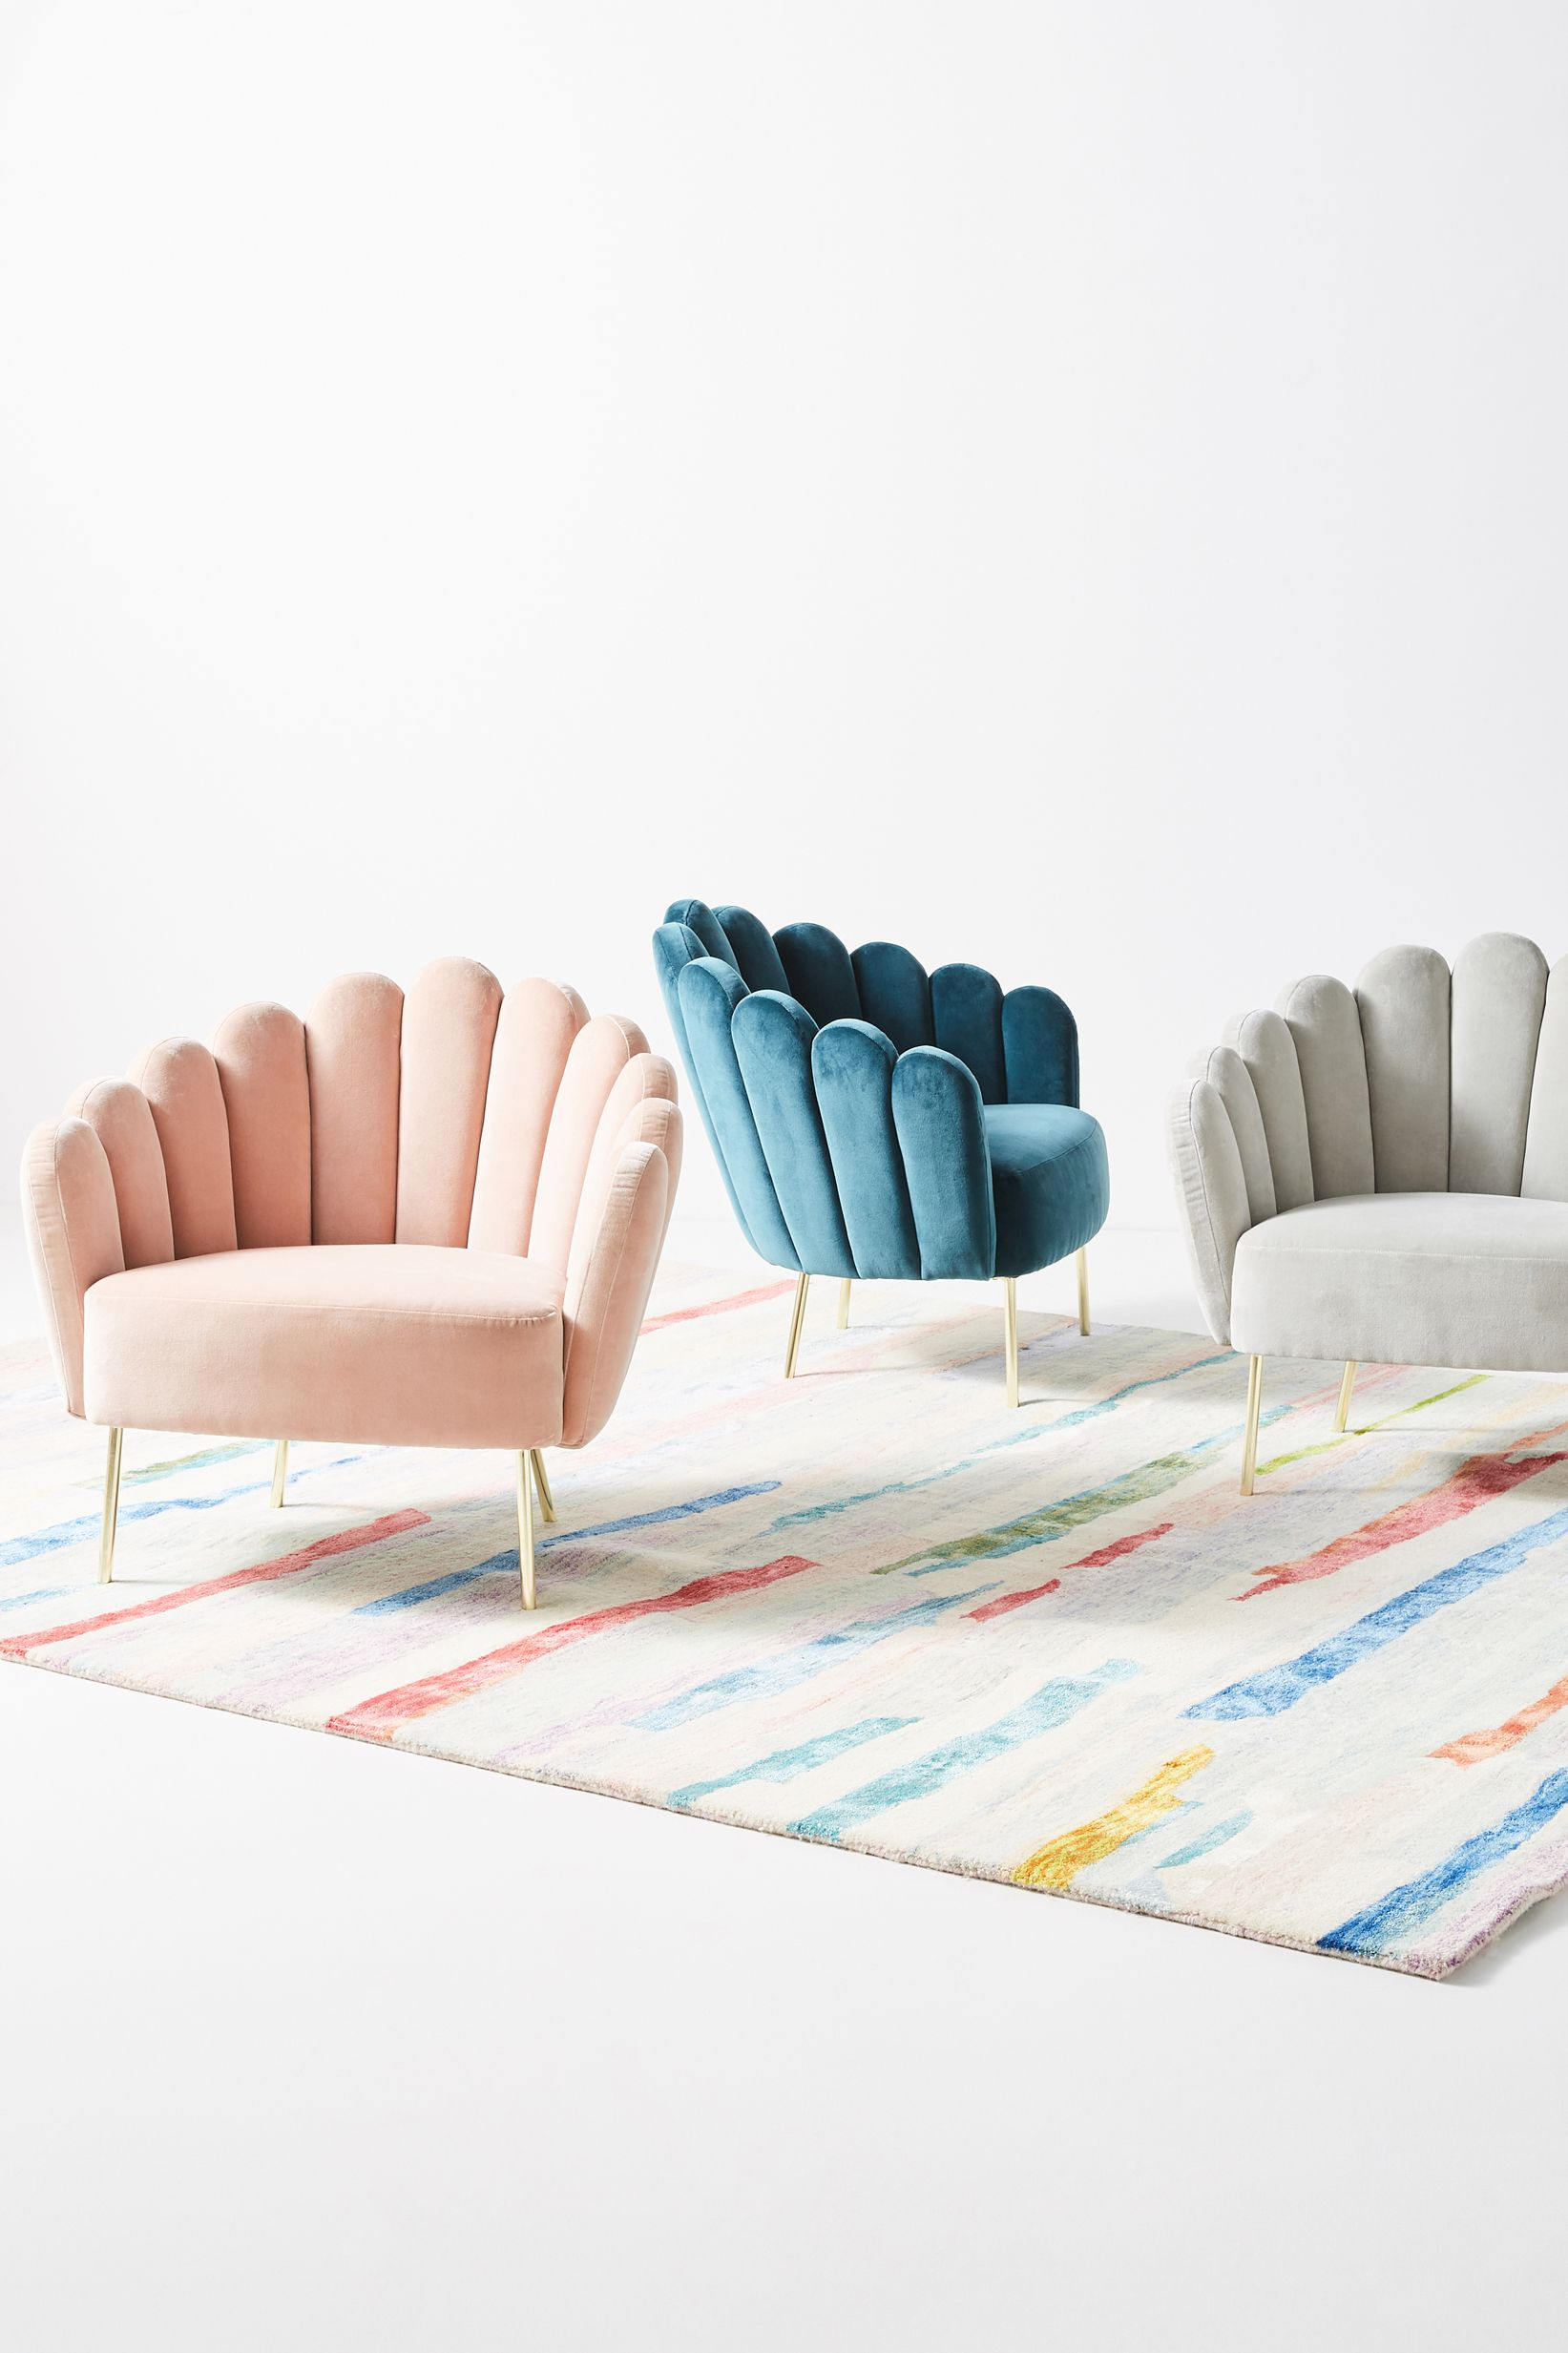 Anthropologie Chairs & Anthropologieu0027s New Collaboration With Bethan Gray Features Retro ...